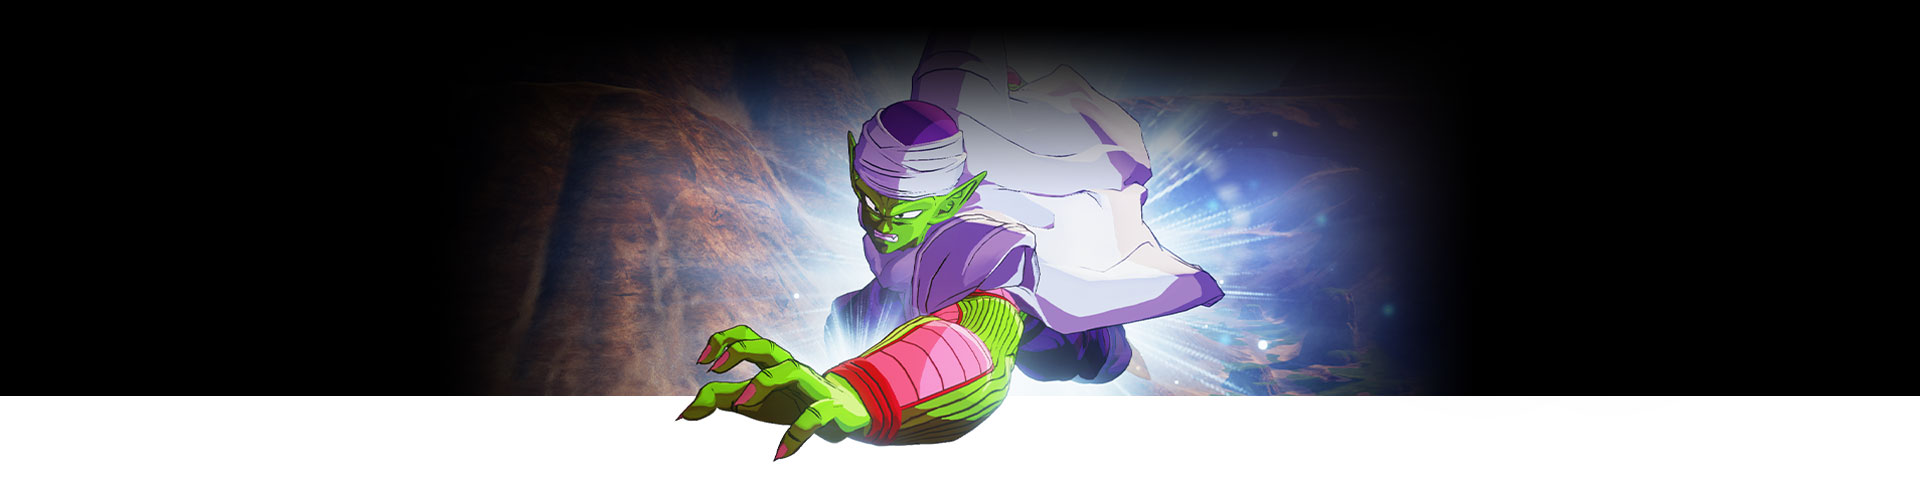 Piccolo flies forward with his hand outstretched